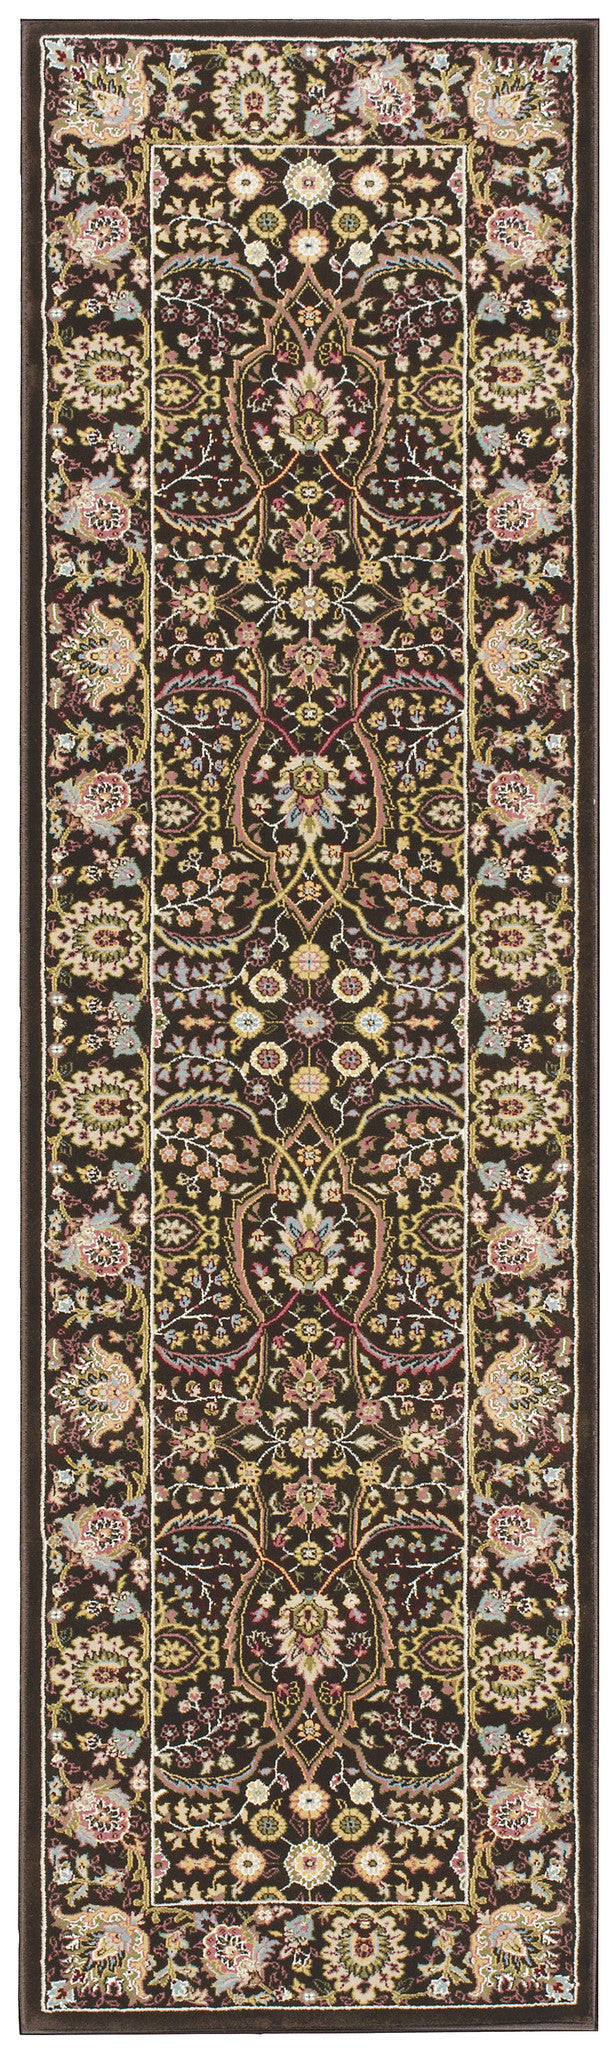 Kathy Ireland Antiquities American Jewel Espresso Area Rug By Nourison ANT03 ESPRE